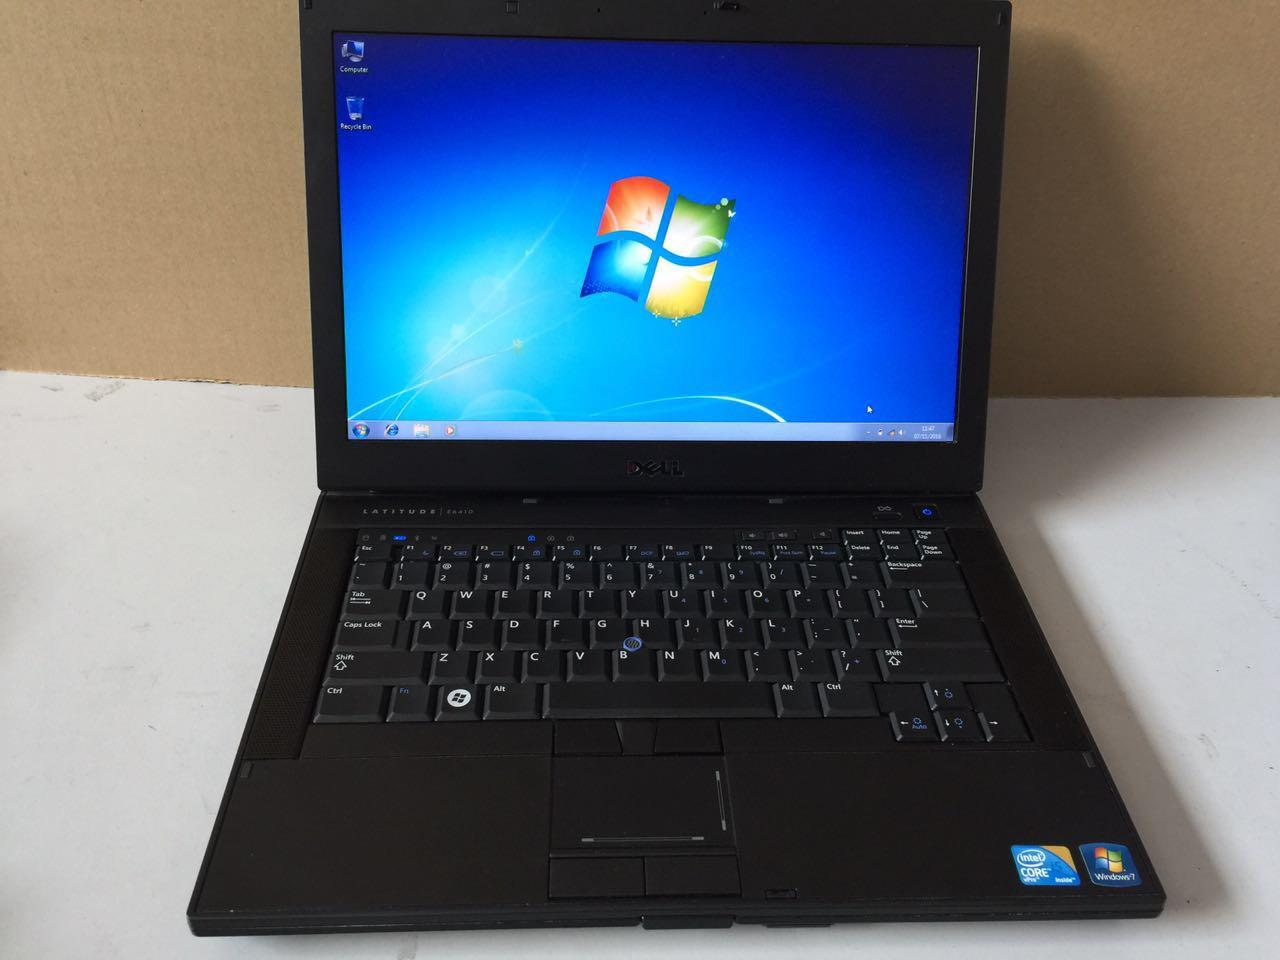 Refurbished Dell E6410 Core i5 2.53Ghz 4GB 250GB Win 7pro